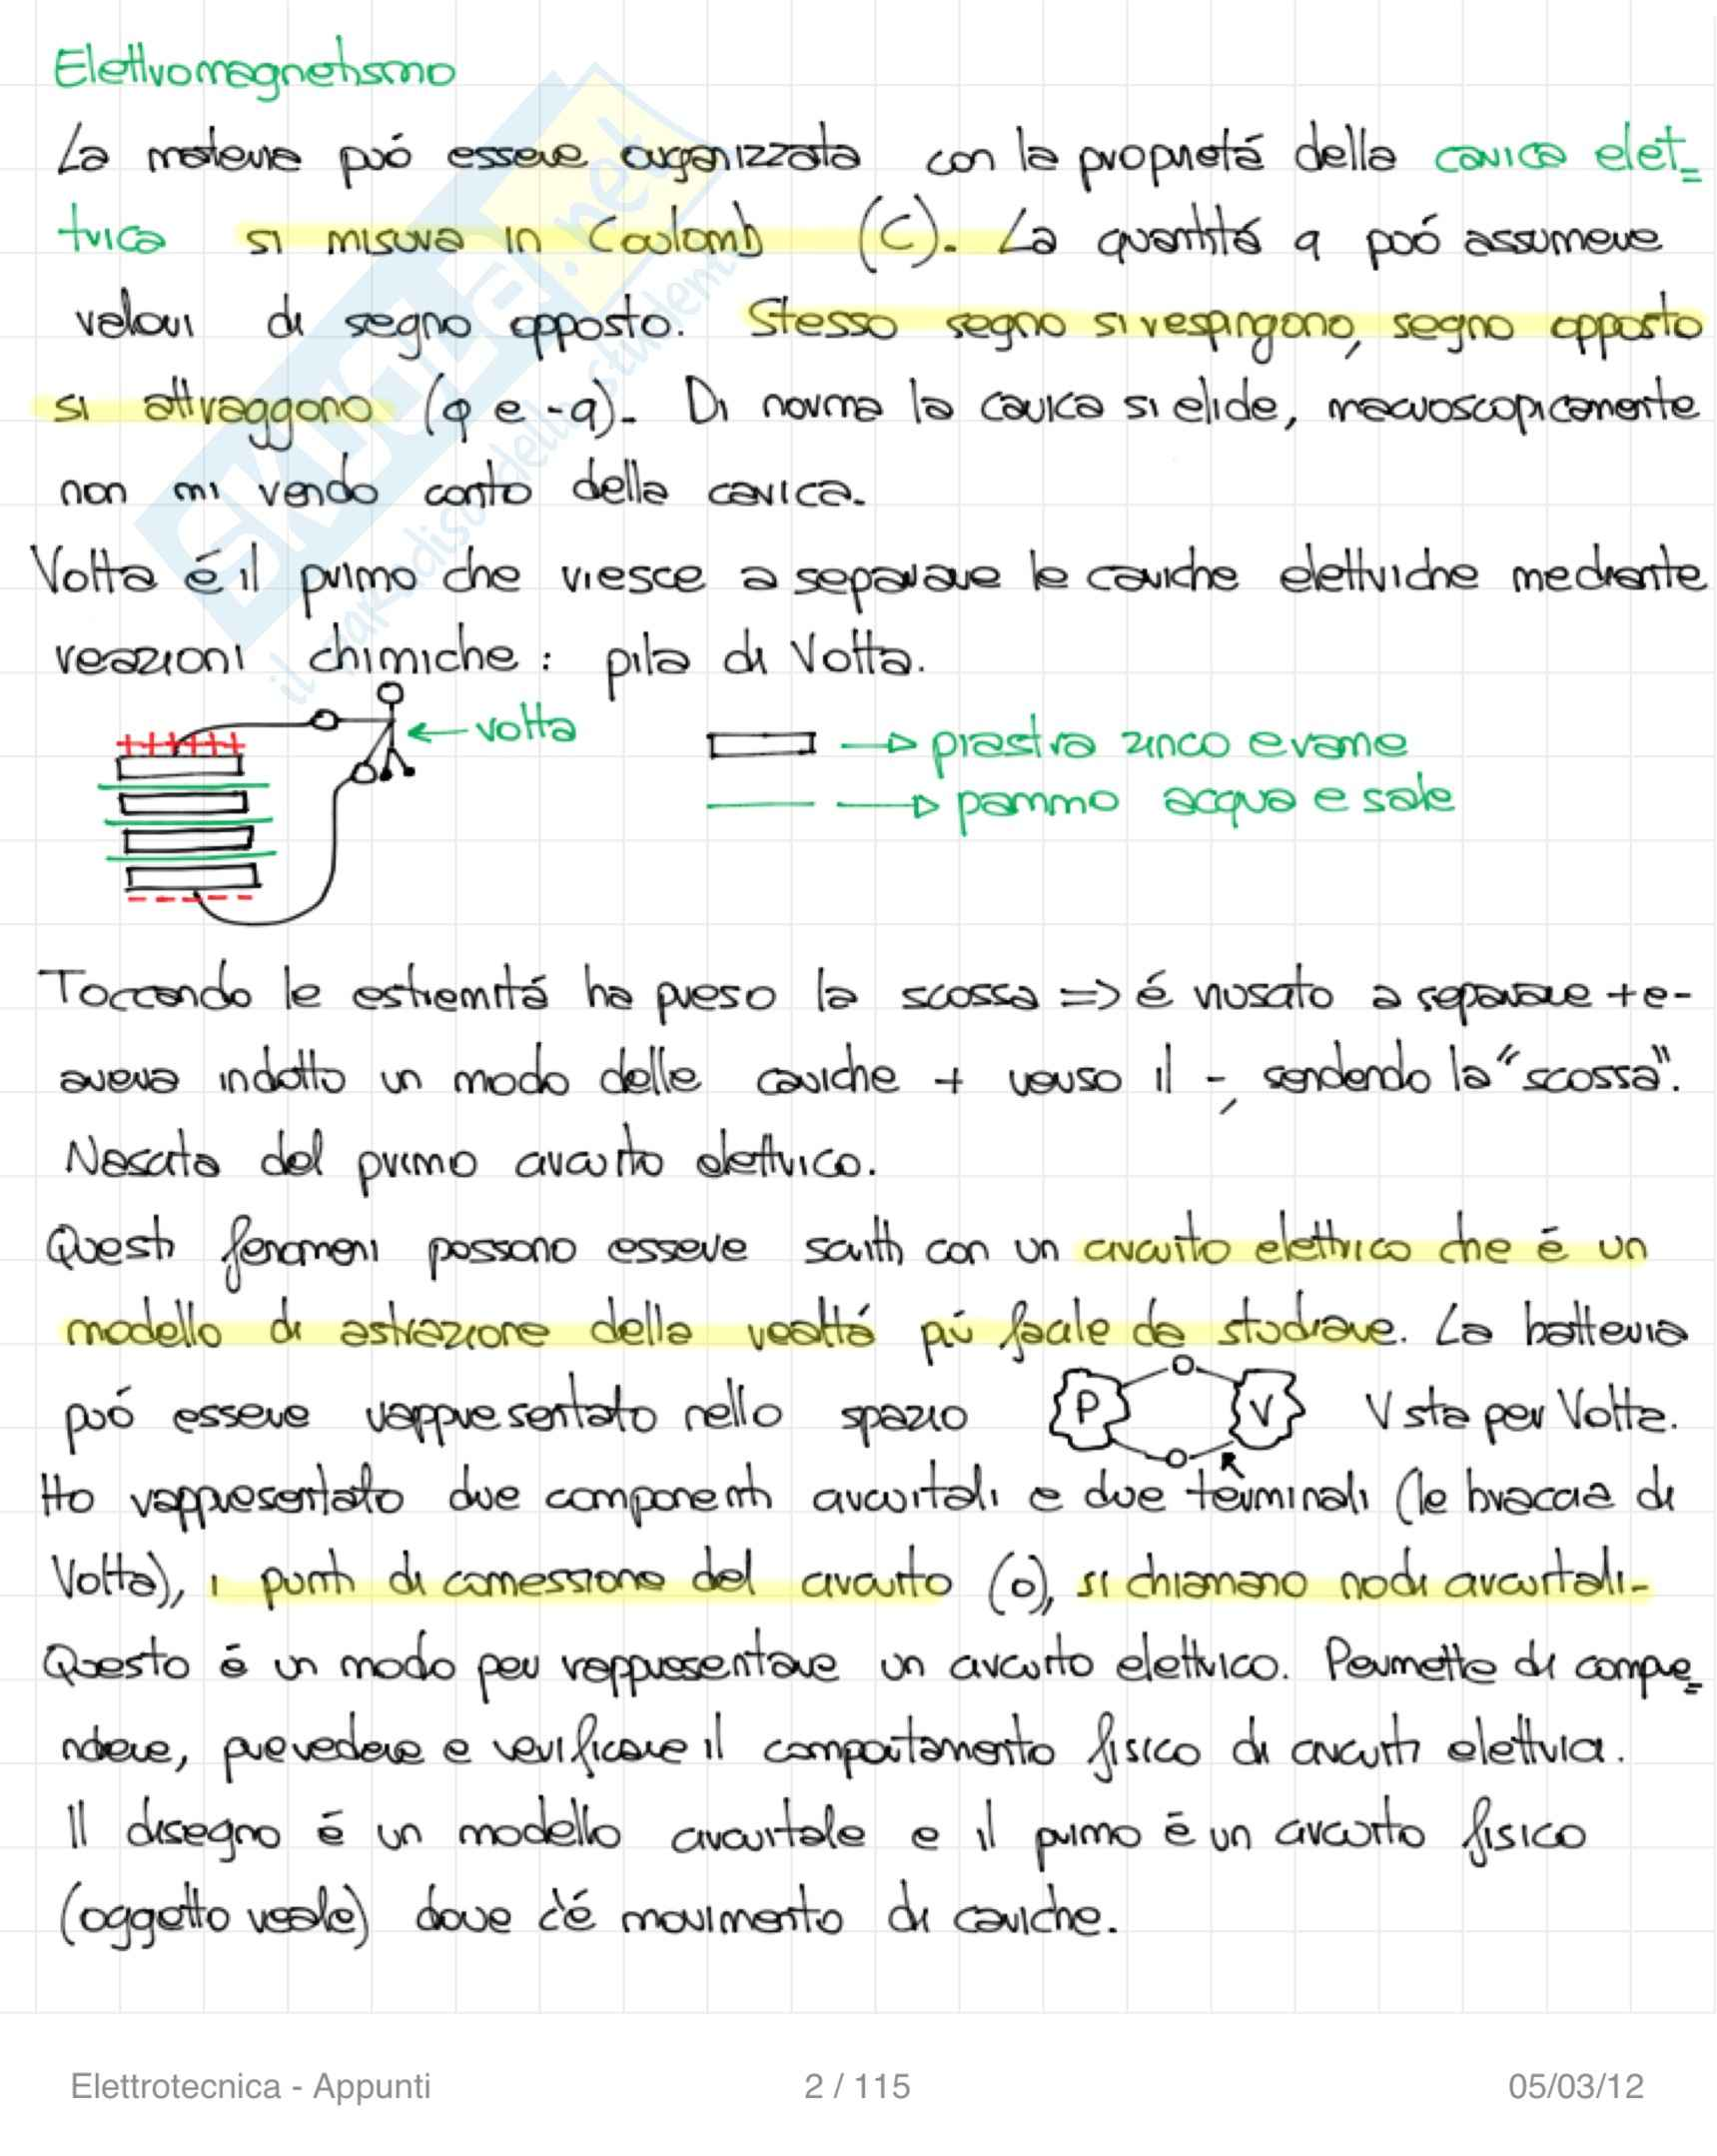 Elettrotecnica - Appunti Pag. 2